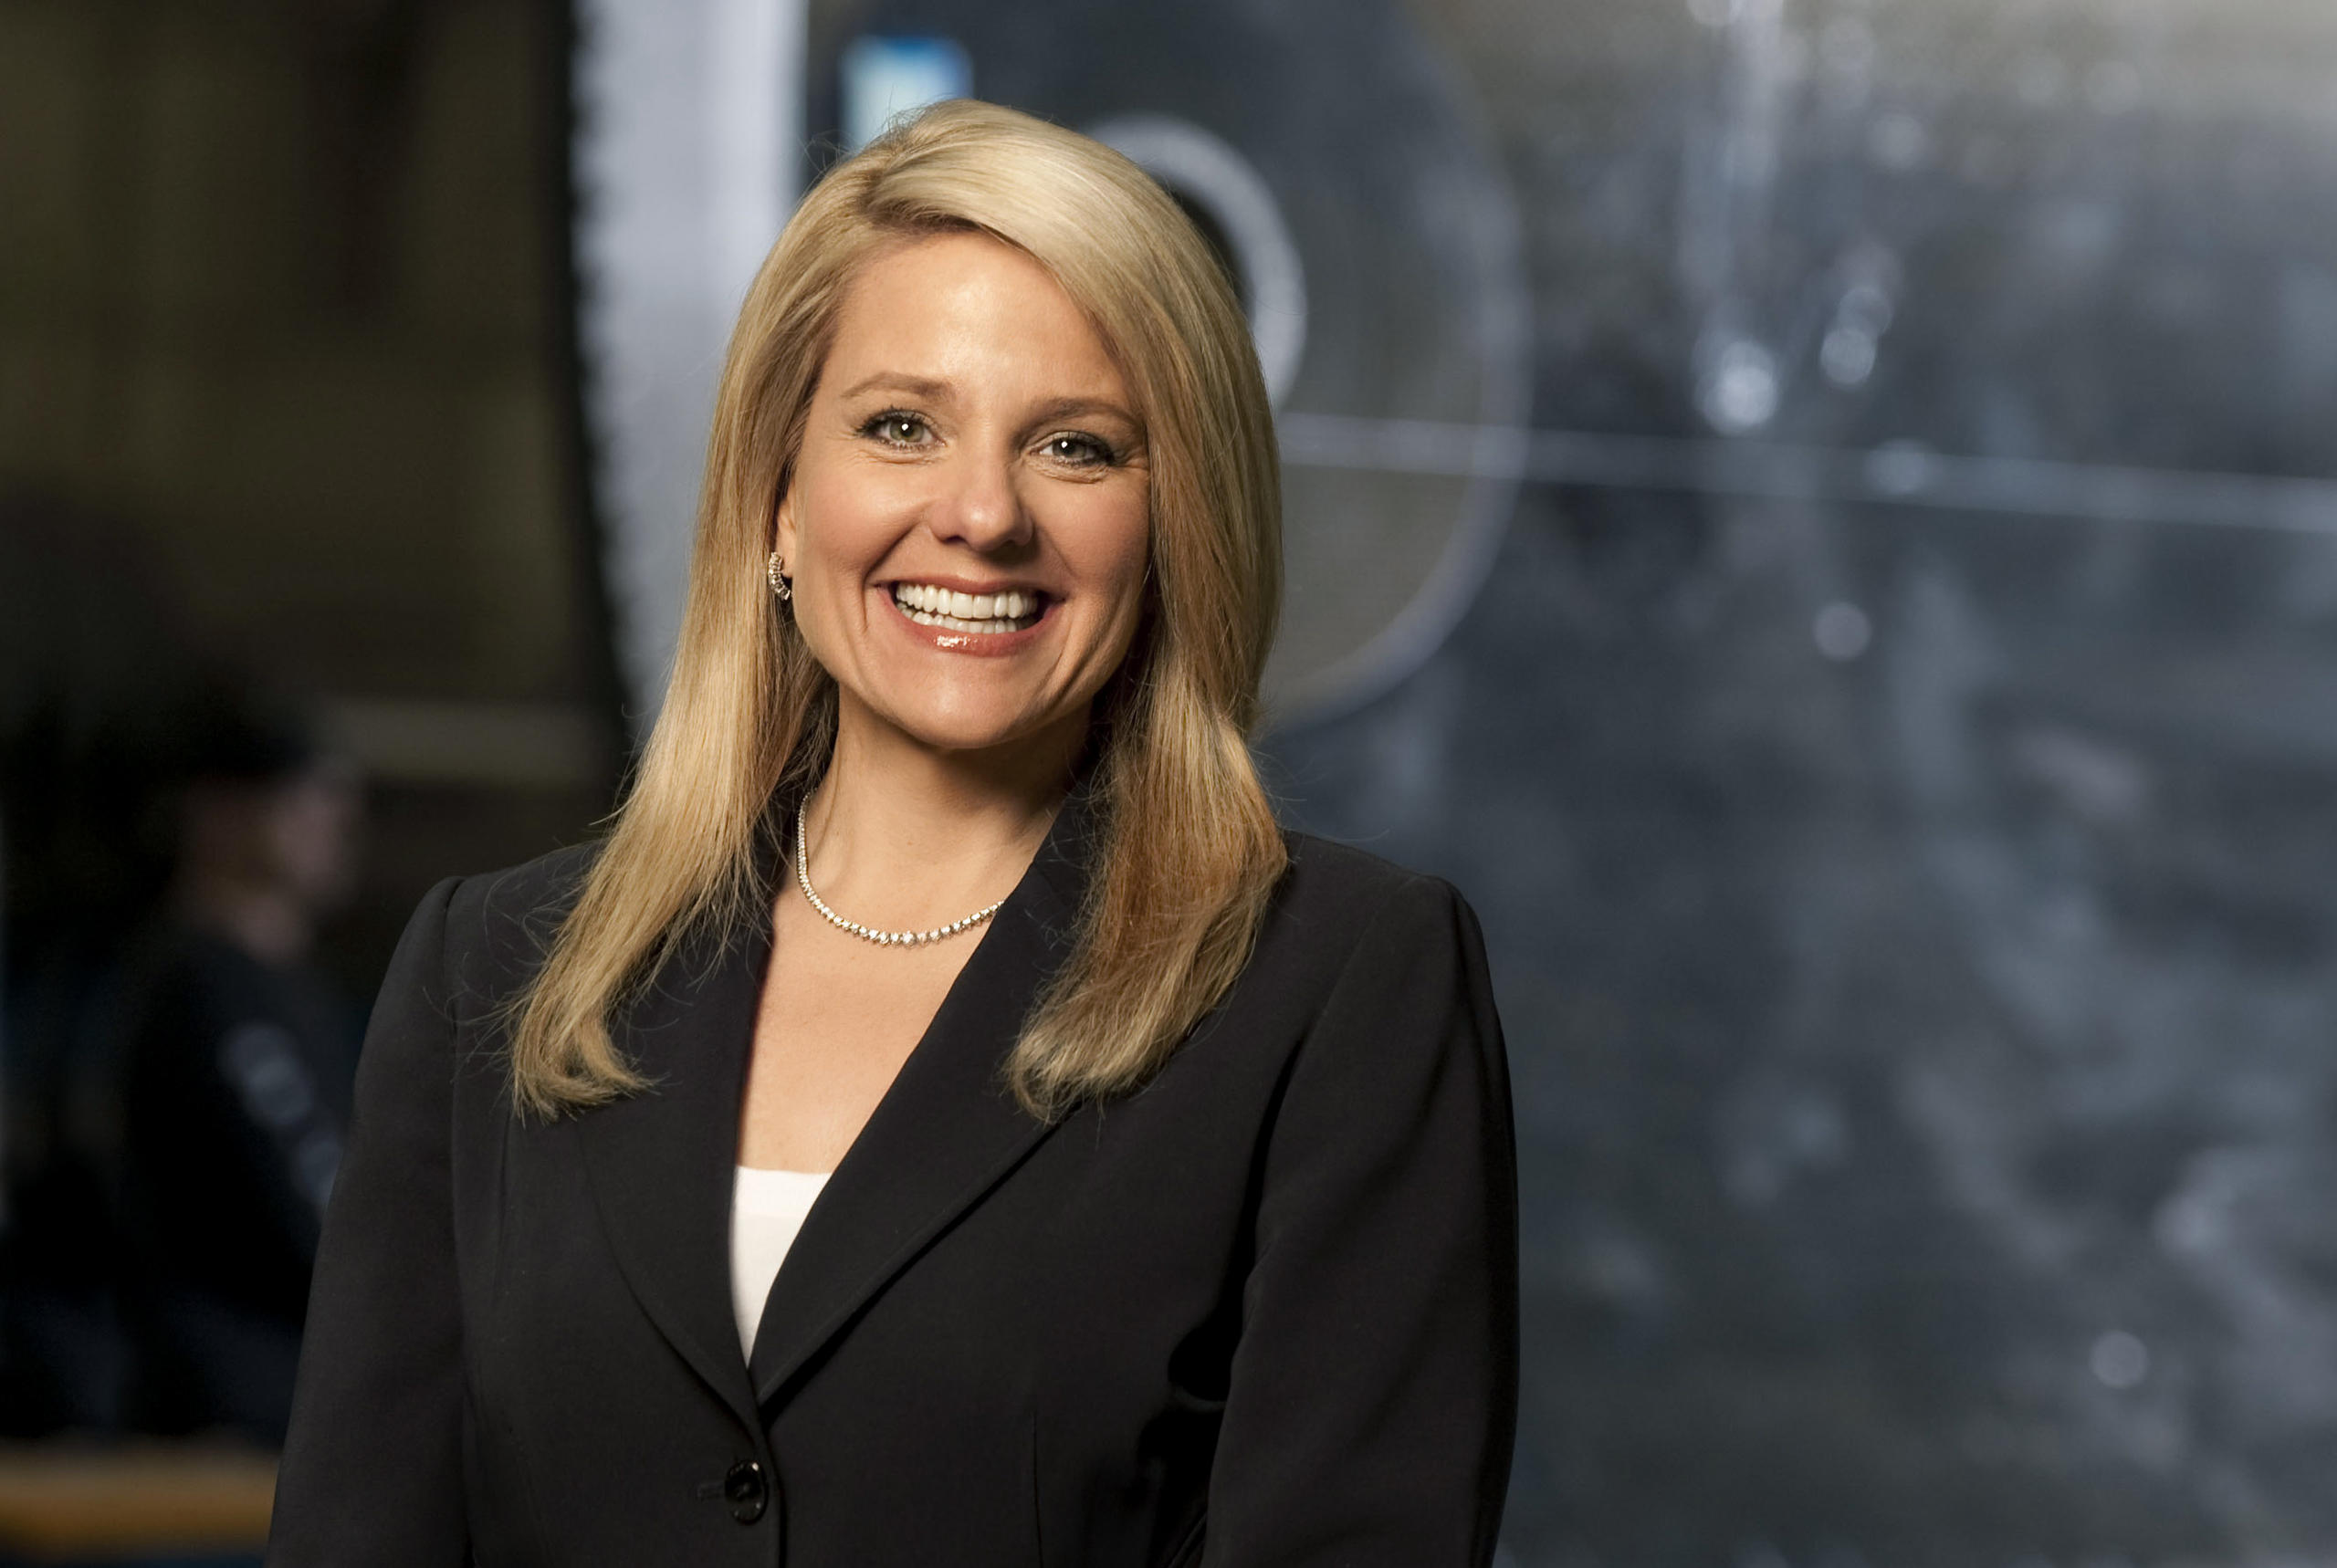 March 2018 - 2017 Satellite Executive of the Year: Gwynne Shotwell, President and COO, SpaceX   Via Satellite